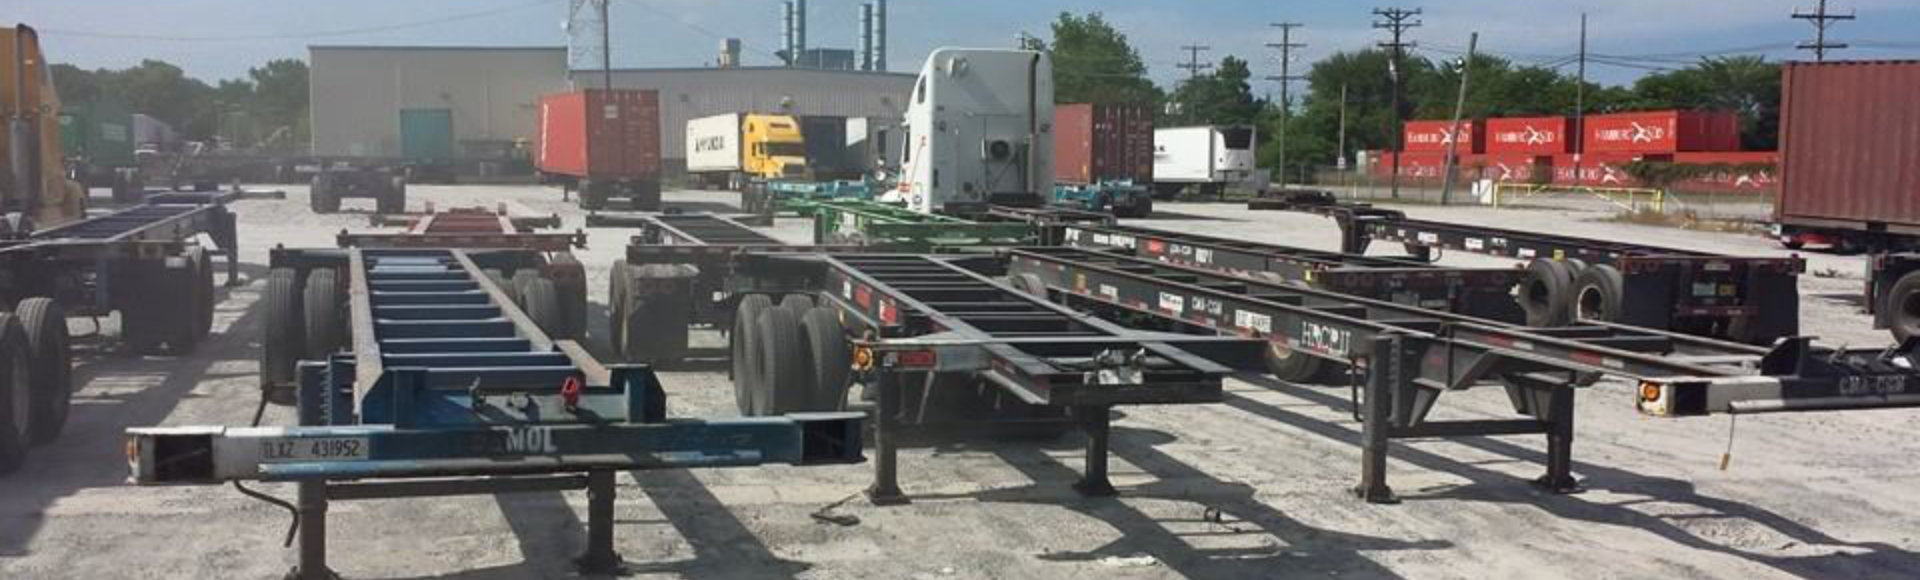 parked intermodal carriers